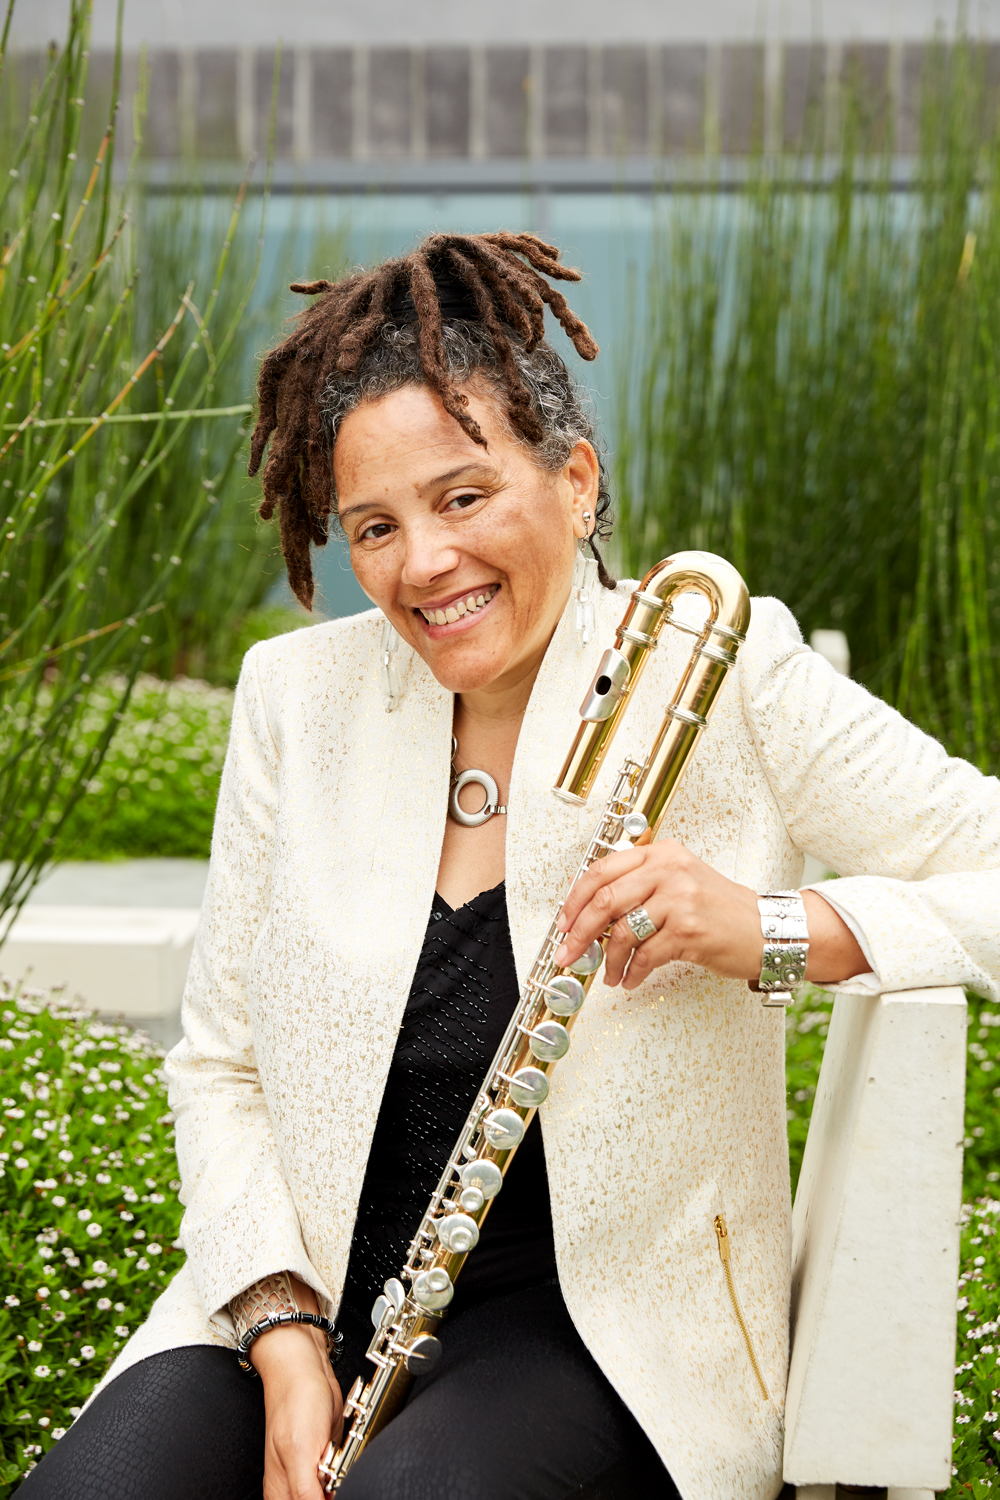 Nicole Mitchell, an internationally acclaimed jazz flutist, composer and educator, was named to the director of Pitt's Jazz Studies in January.